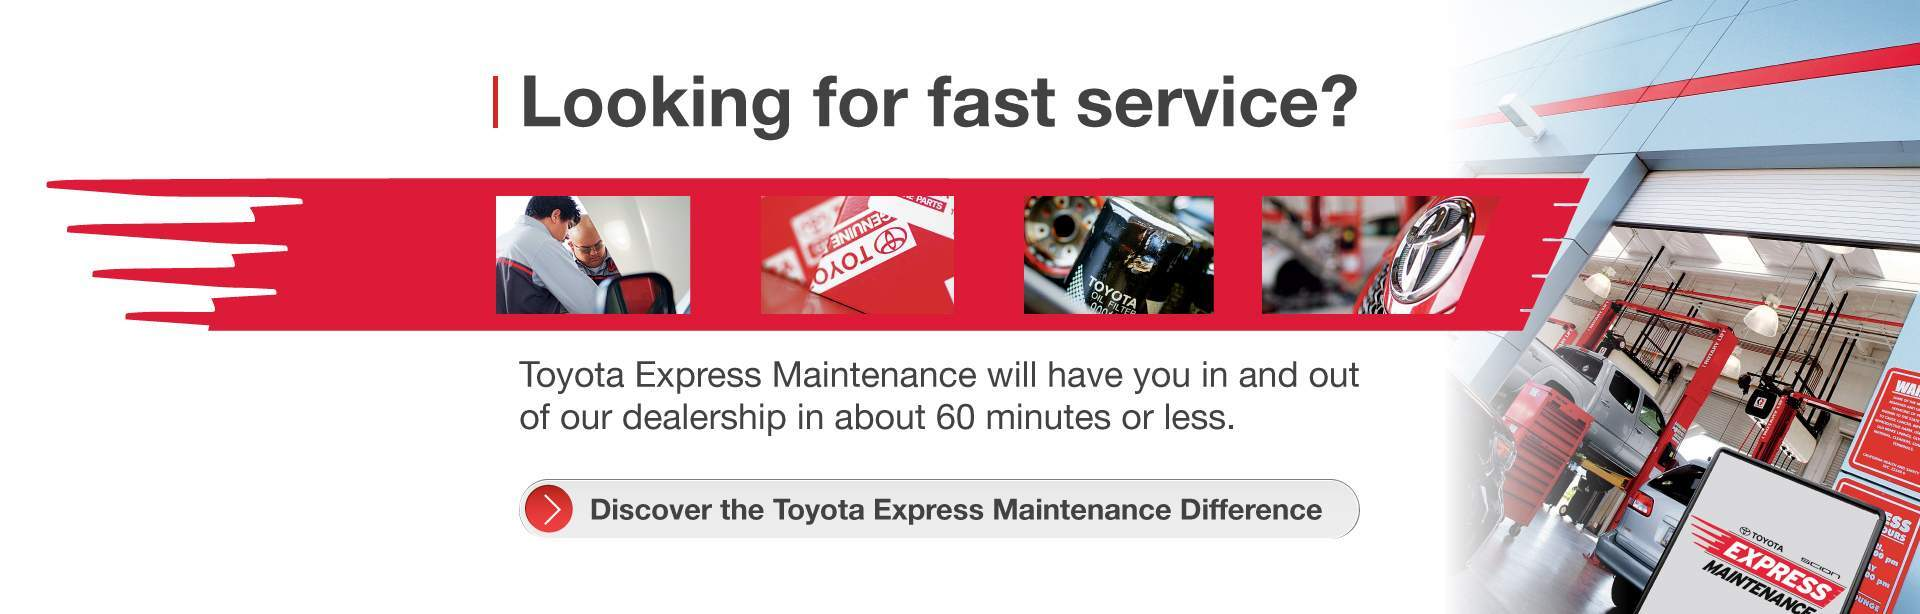 Toyota Express Maintenance